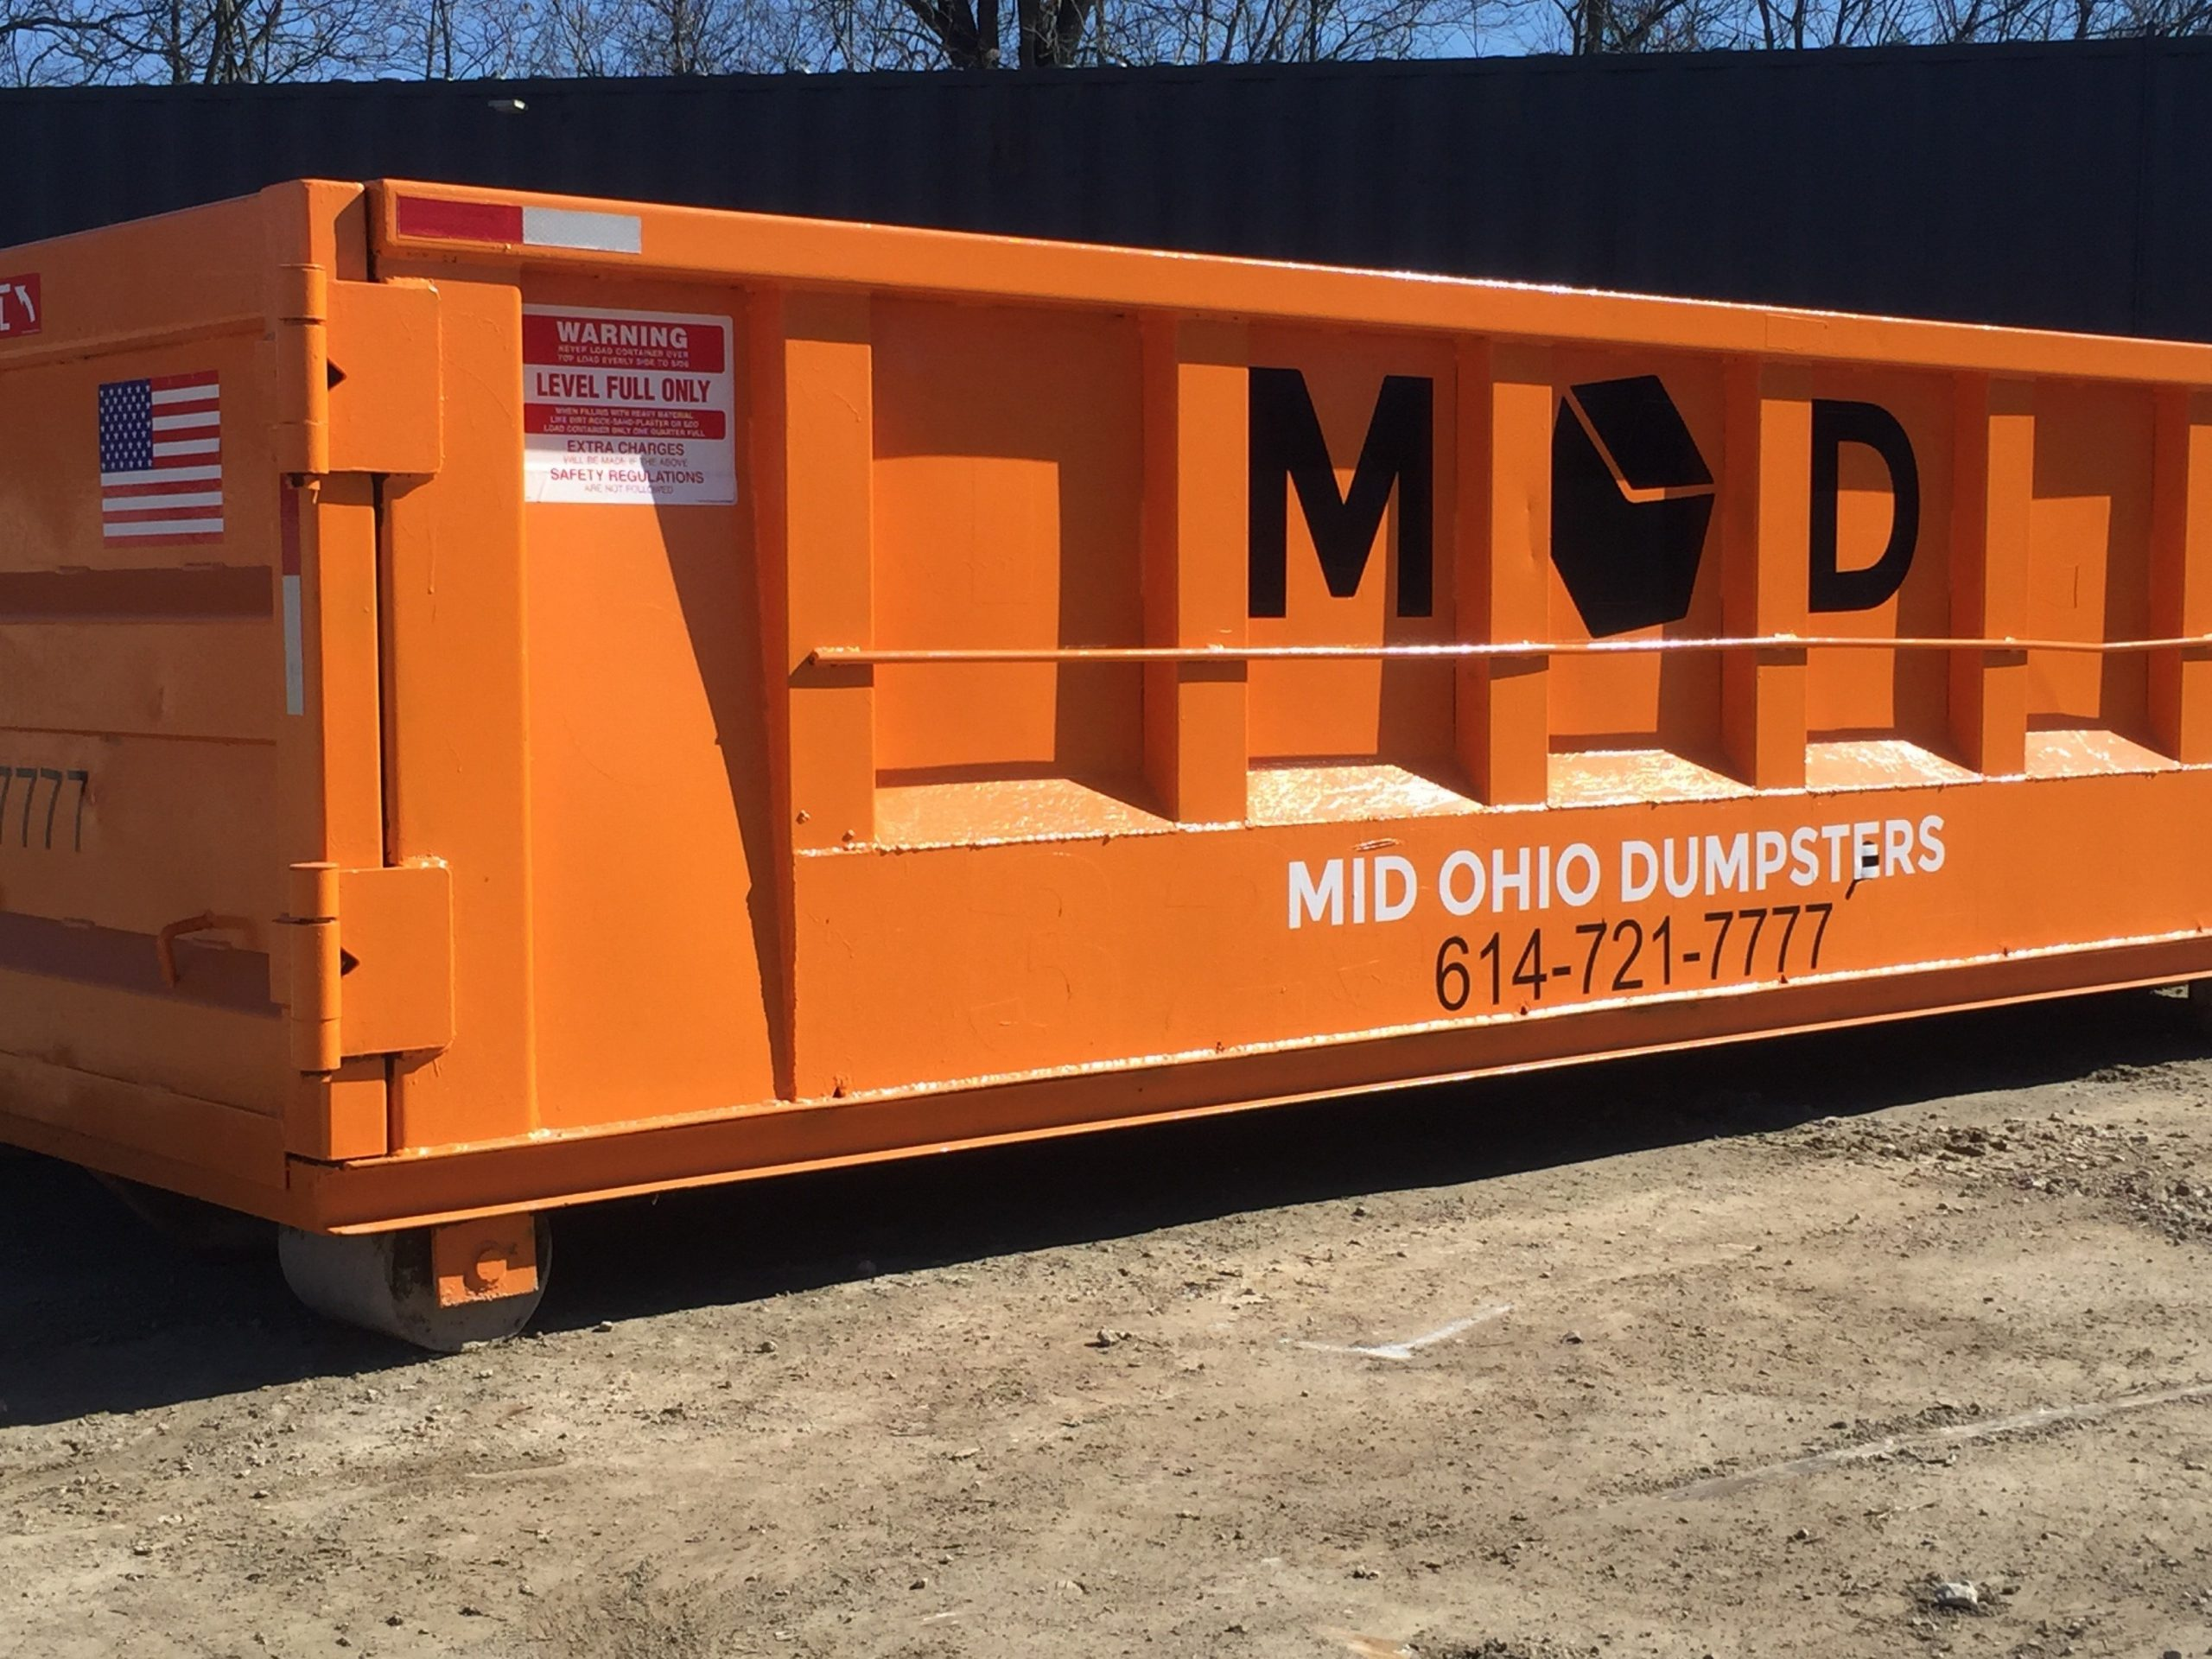 20 yard dumpster rental prices near me